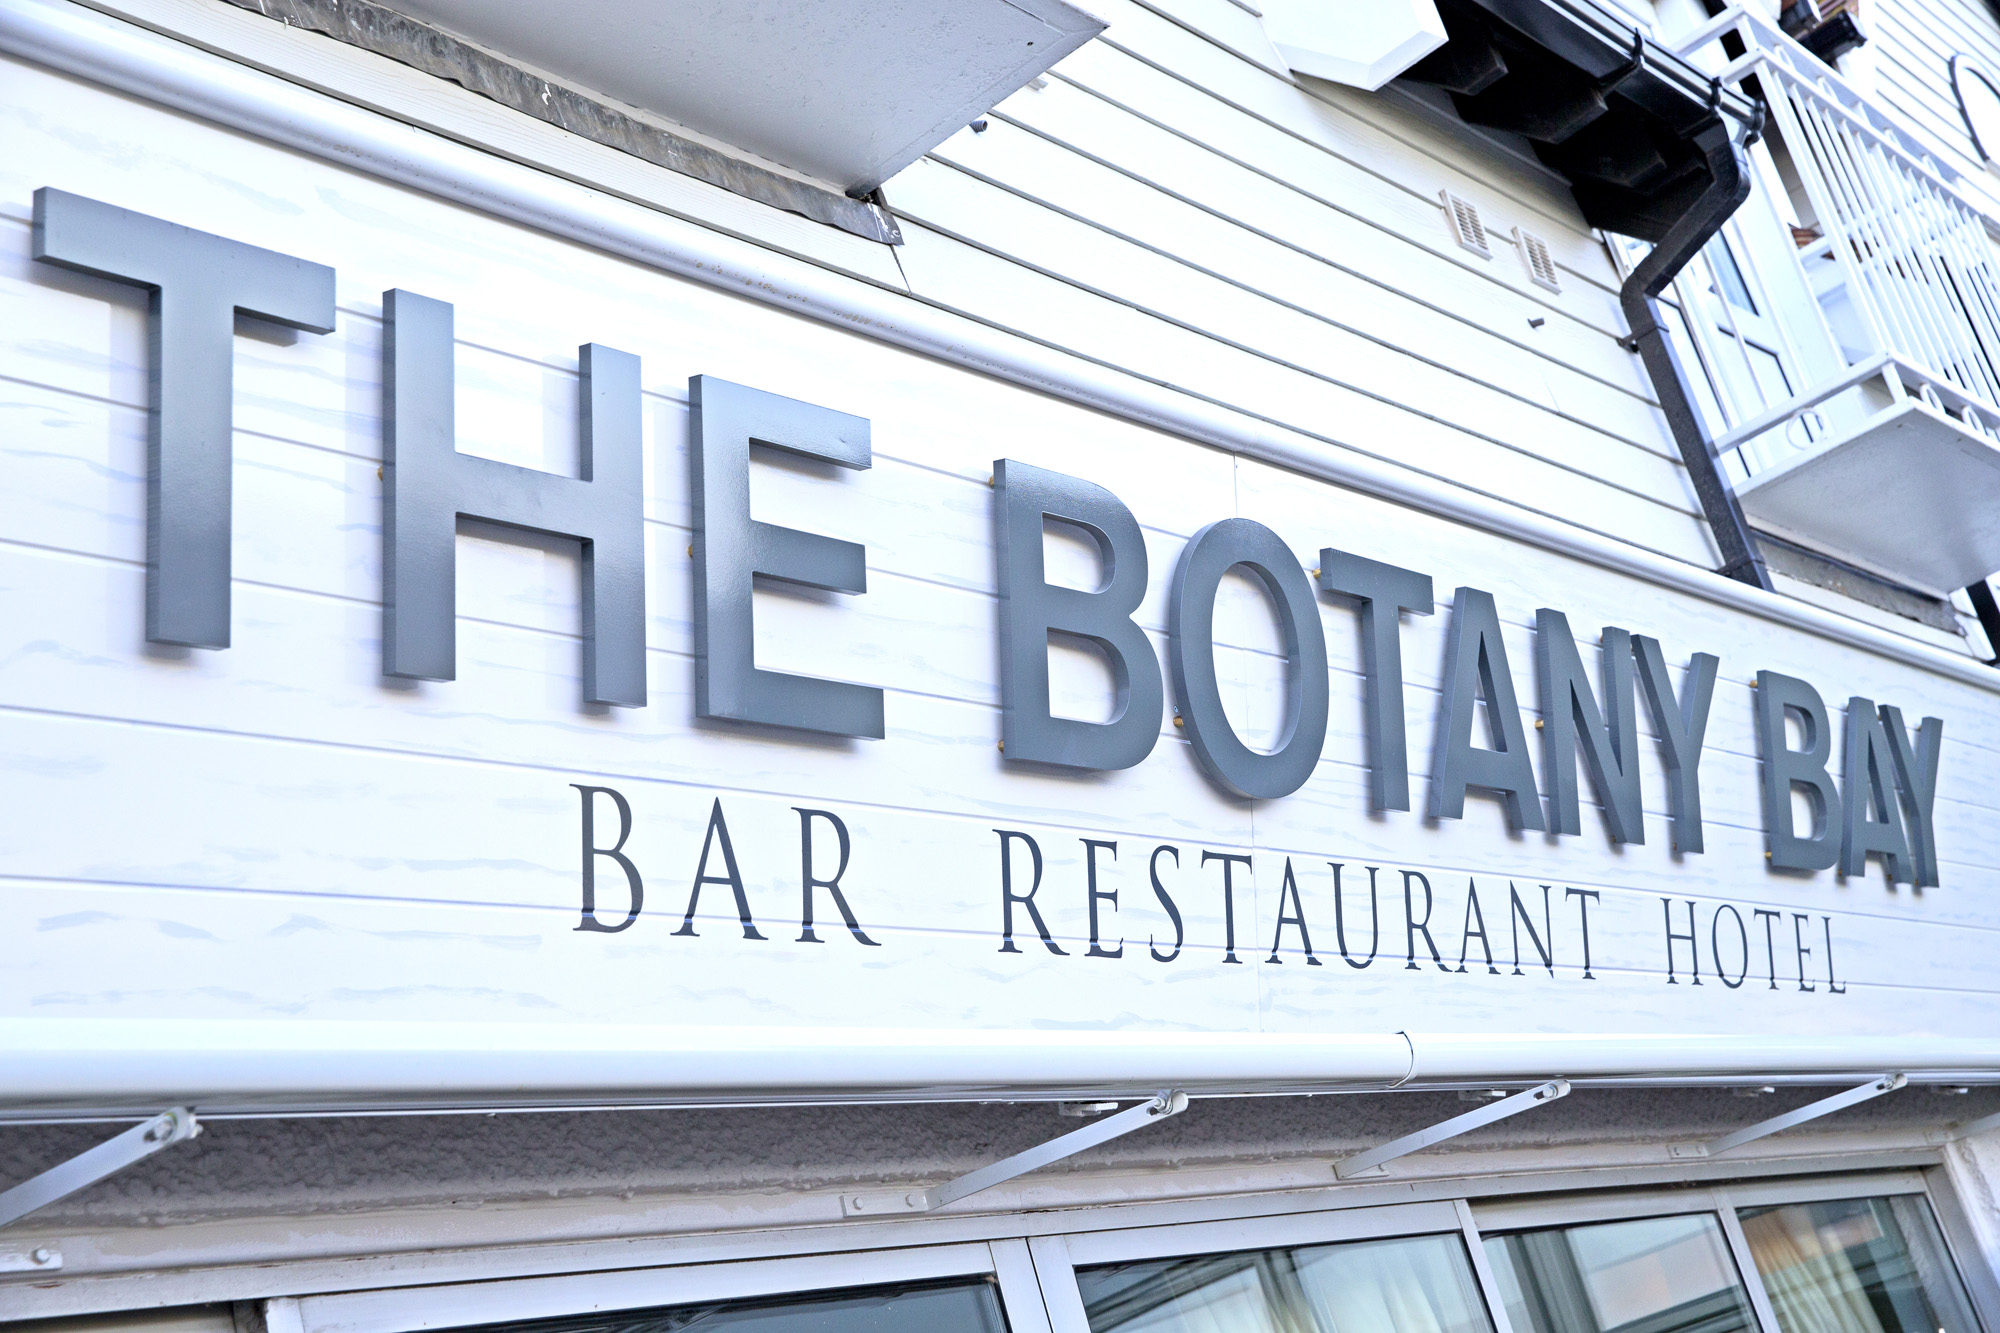 Botany Bay Hotel, Broadstairs